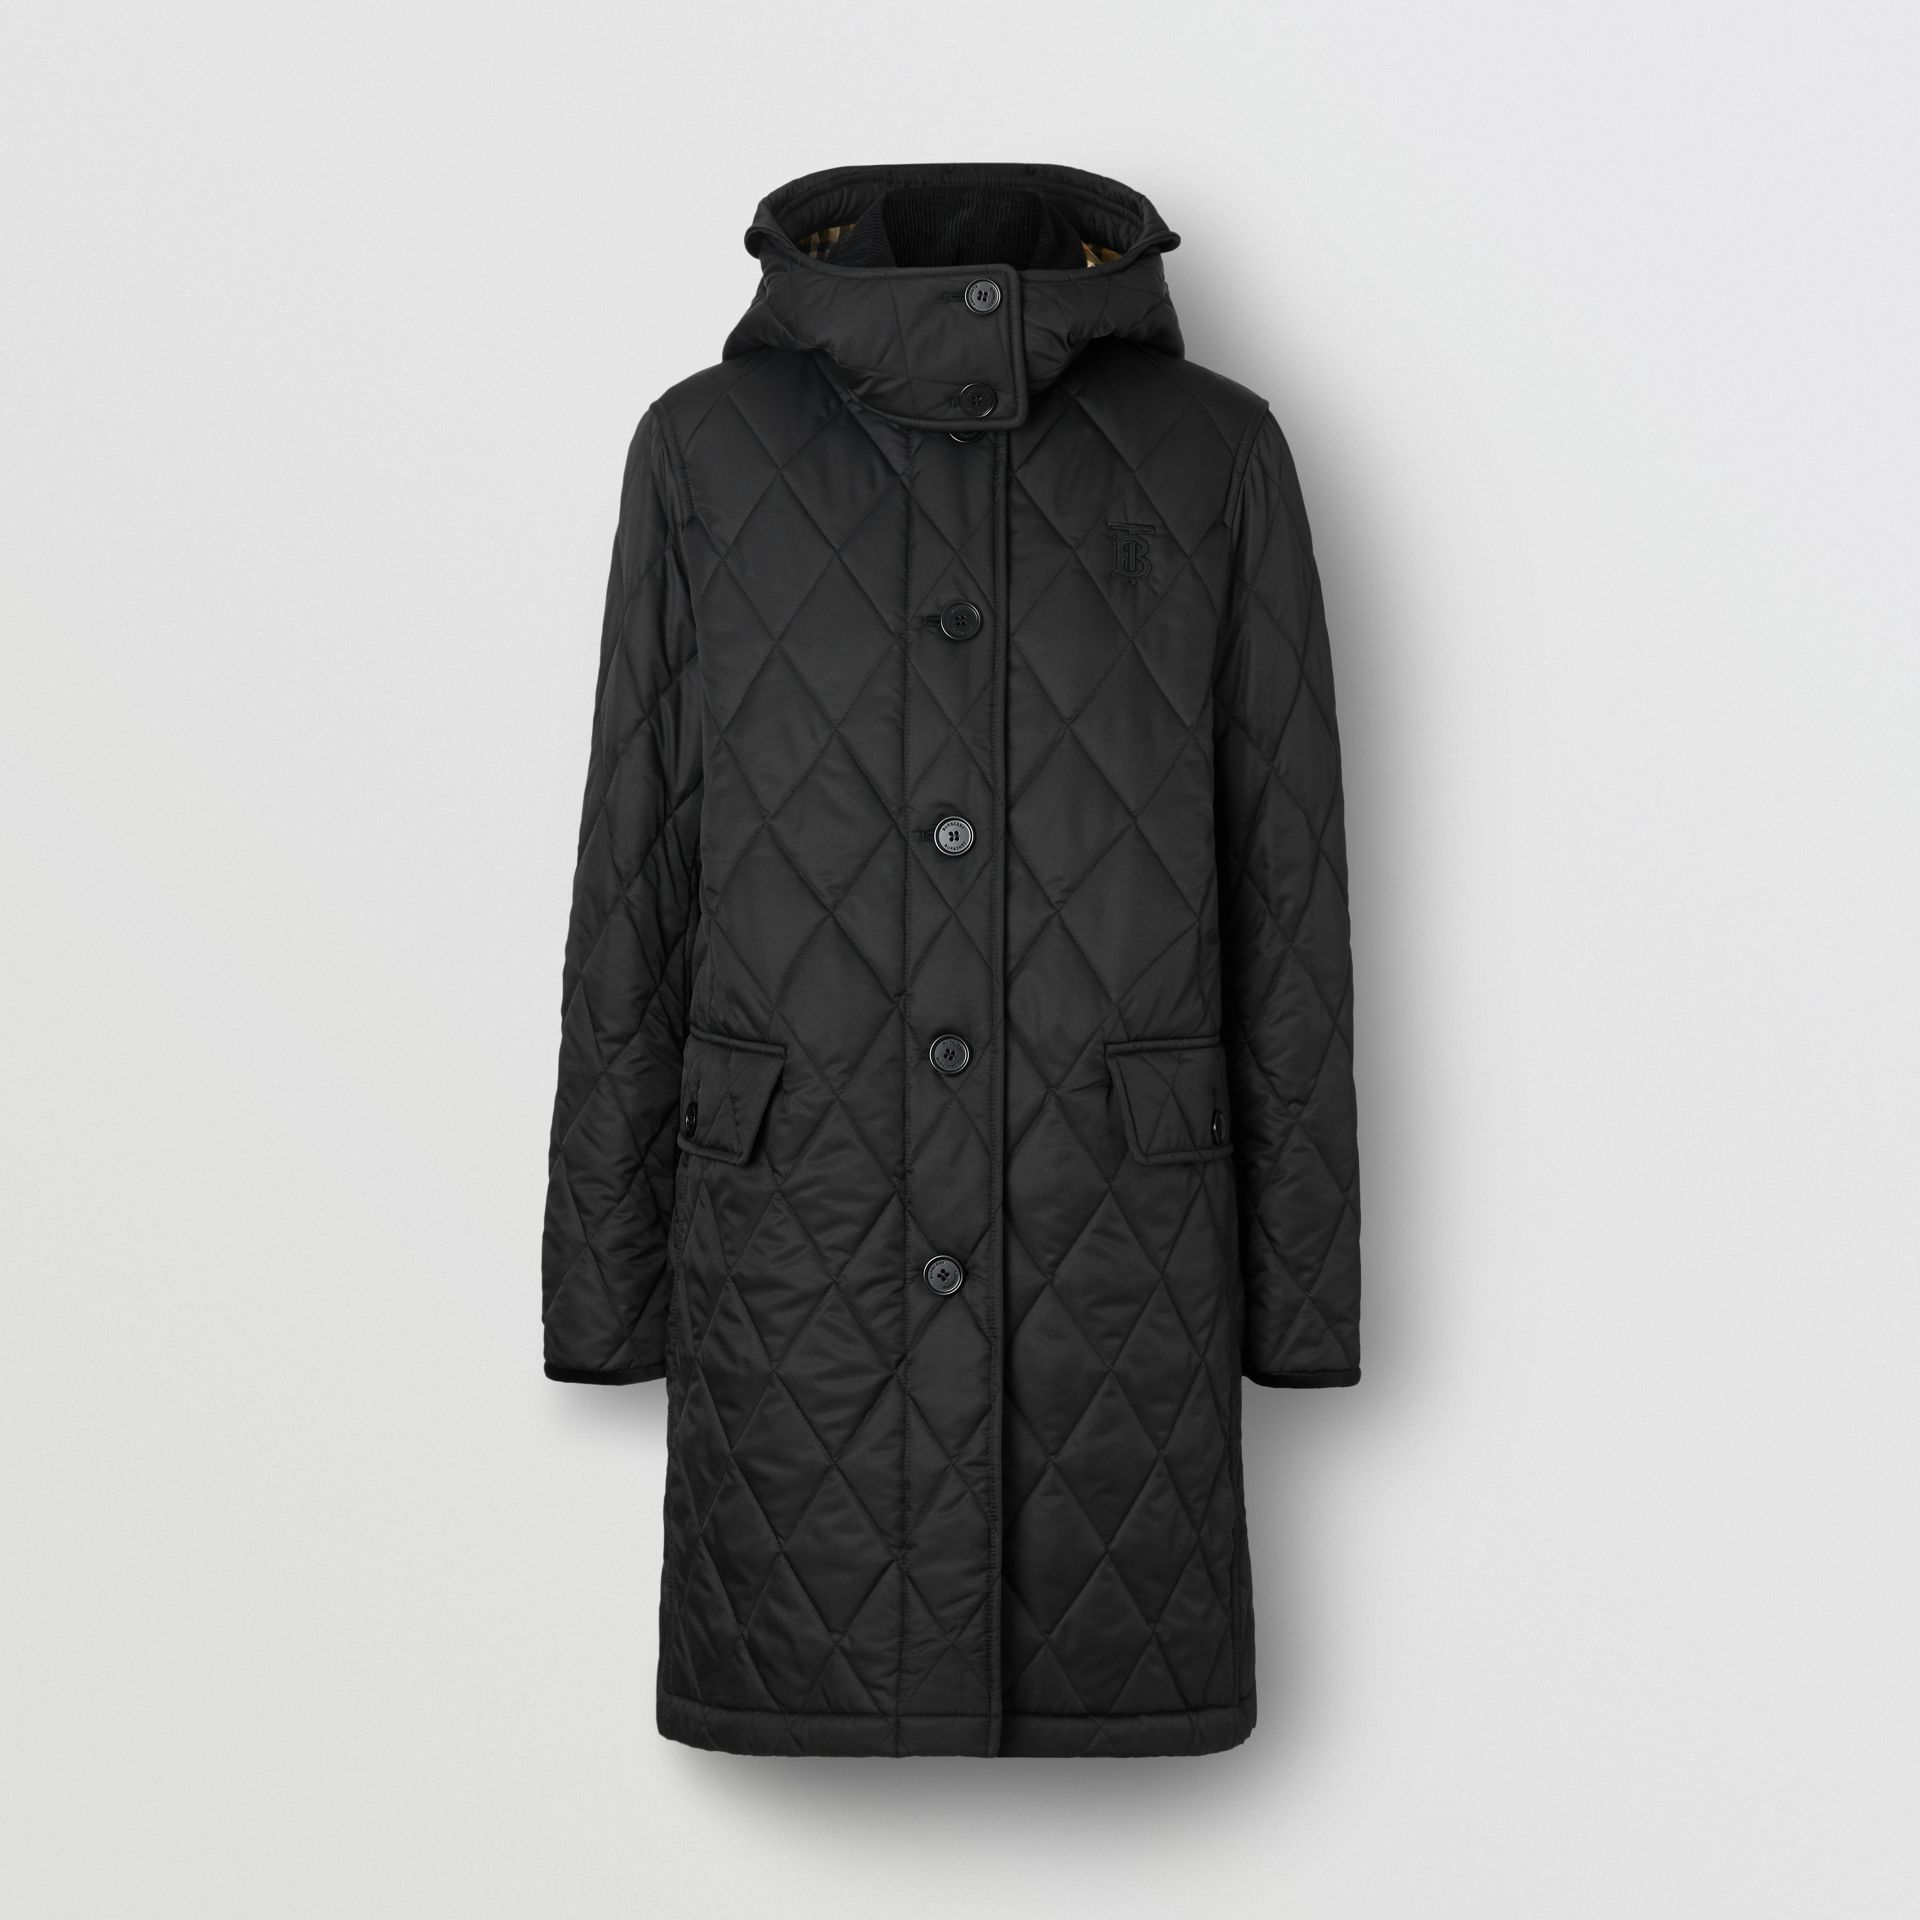 Detachable Hood Monogram Motif Quilted Coat in Black - Women | Burberry Australia - gallery image 3